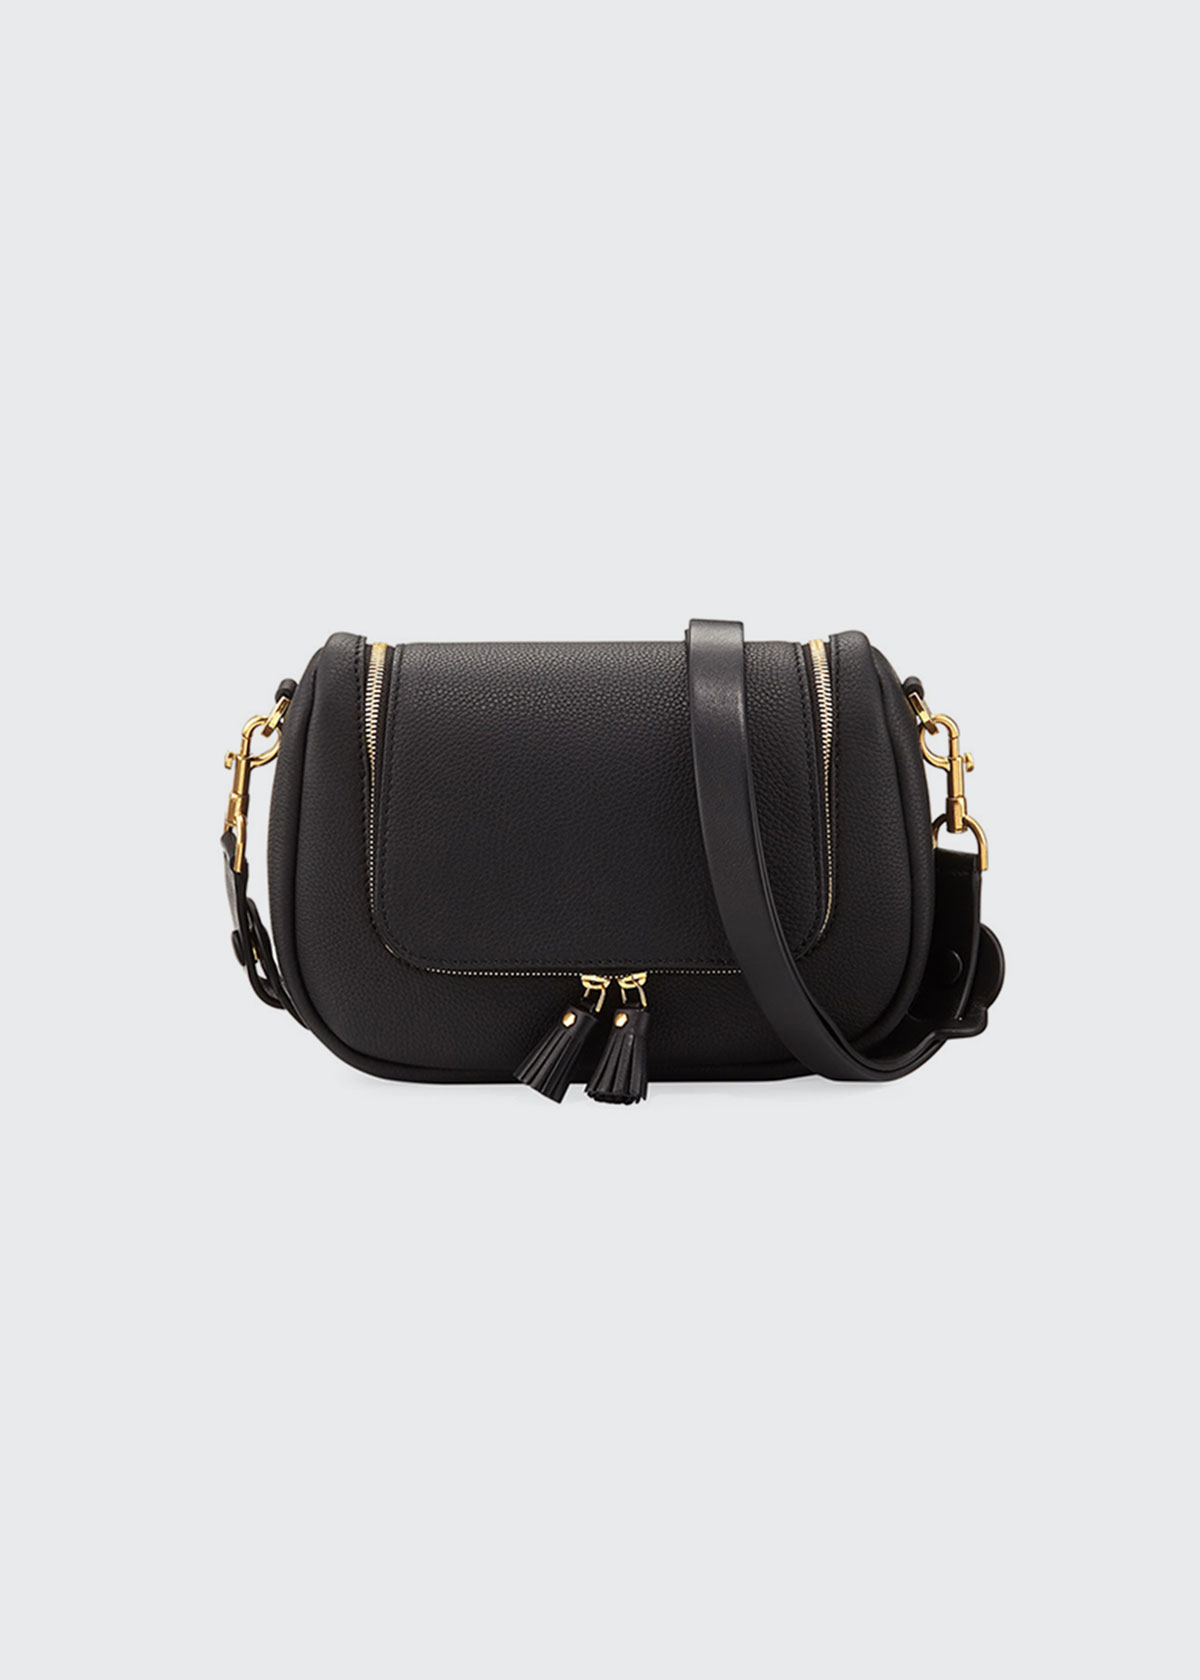 Vere Small Leather Satchel Bag in Black